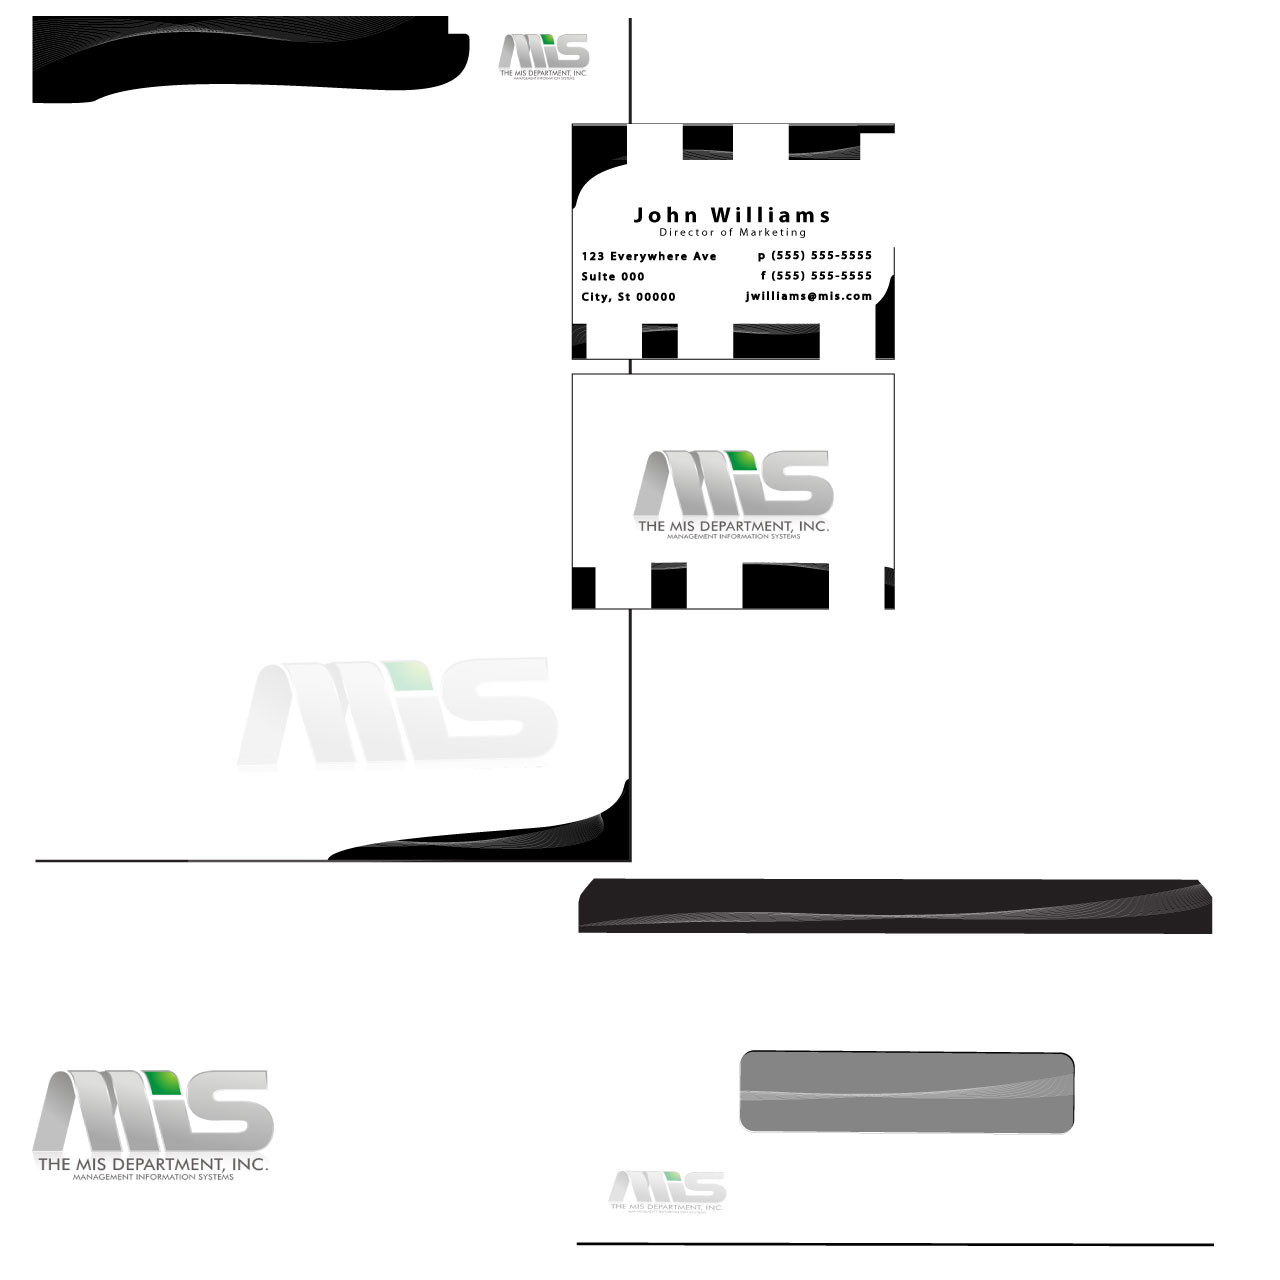 Business Card Design by elitedez - Entry No. 40 in the Business Card Design Contest MIS Stationary.